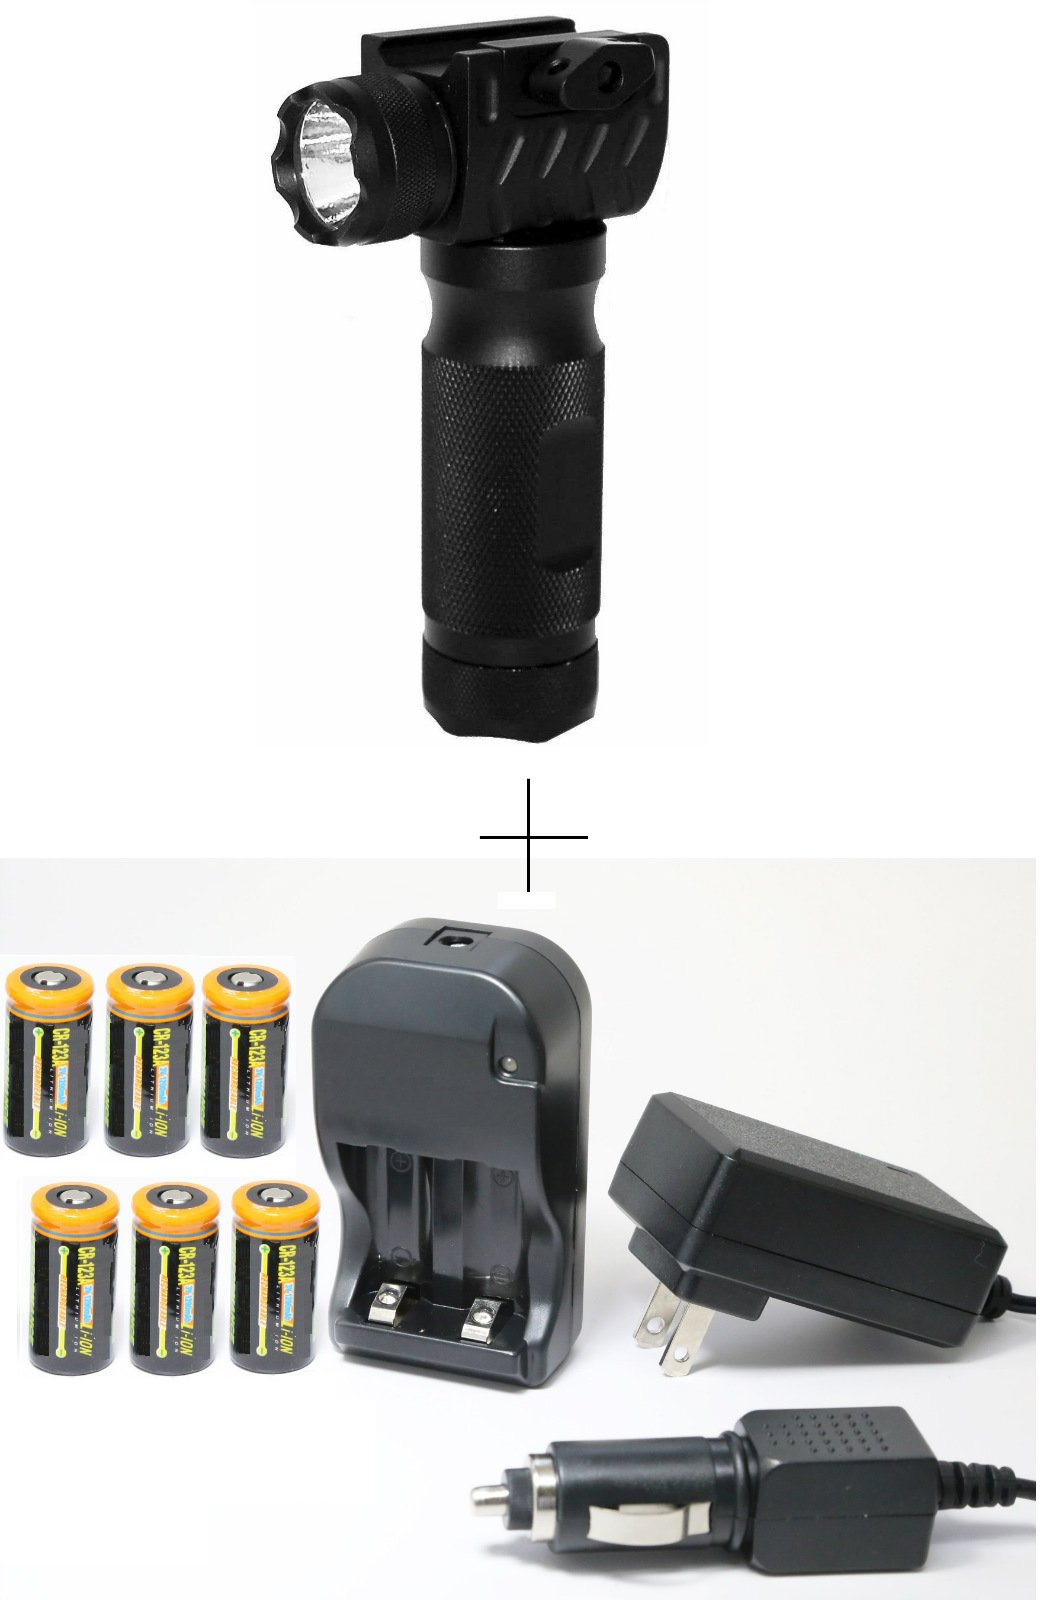 Ultimate Arms Gear QD Precision Machined Aluminum 150 Lumens LED Flashlight Vertical Handle Combo For Rifle Shotgun Weaver Picatinny System - Batteries Included + 6pc CR123A 3V 1200 mAh Lithium Li-Ion Rechargeable Batteries Battery Charger Kit with Univer